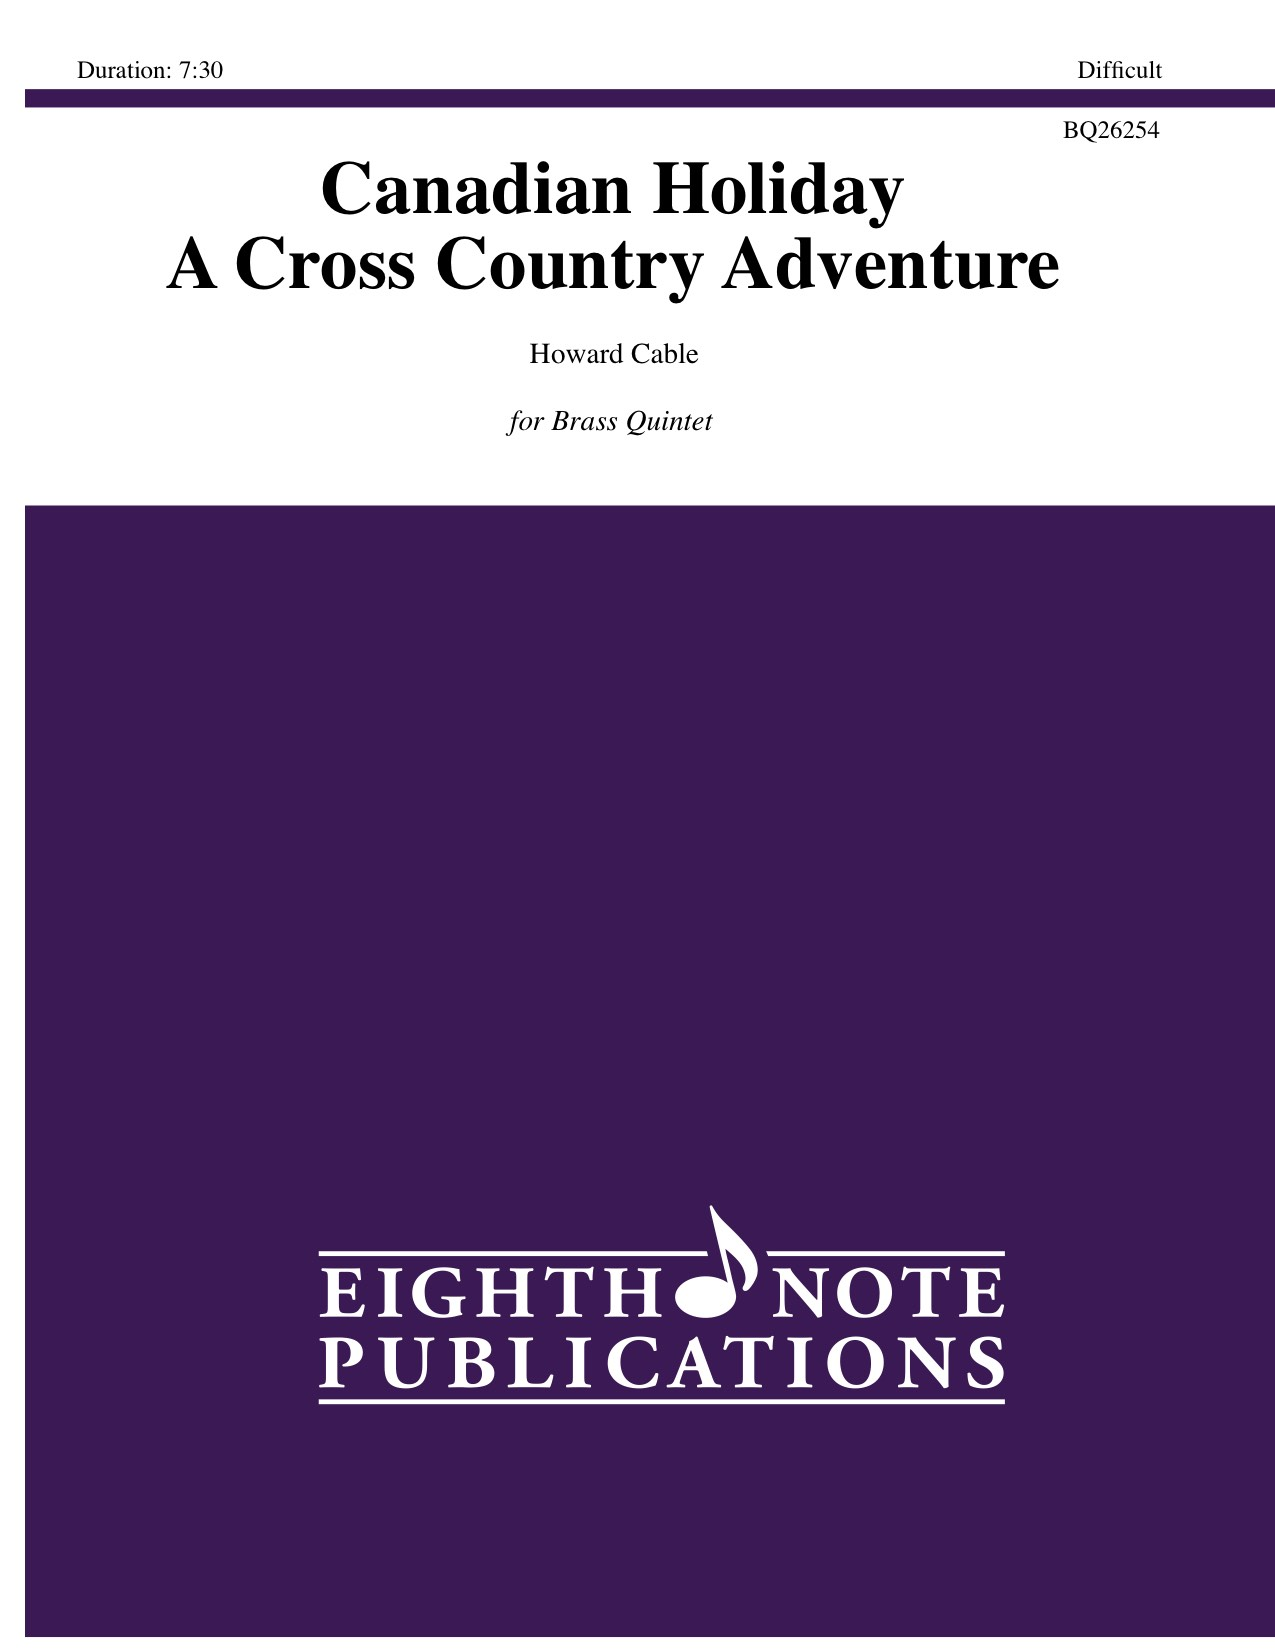 Canadian Holiday - A Cross Country Adventure - Howard Cable